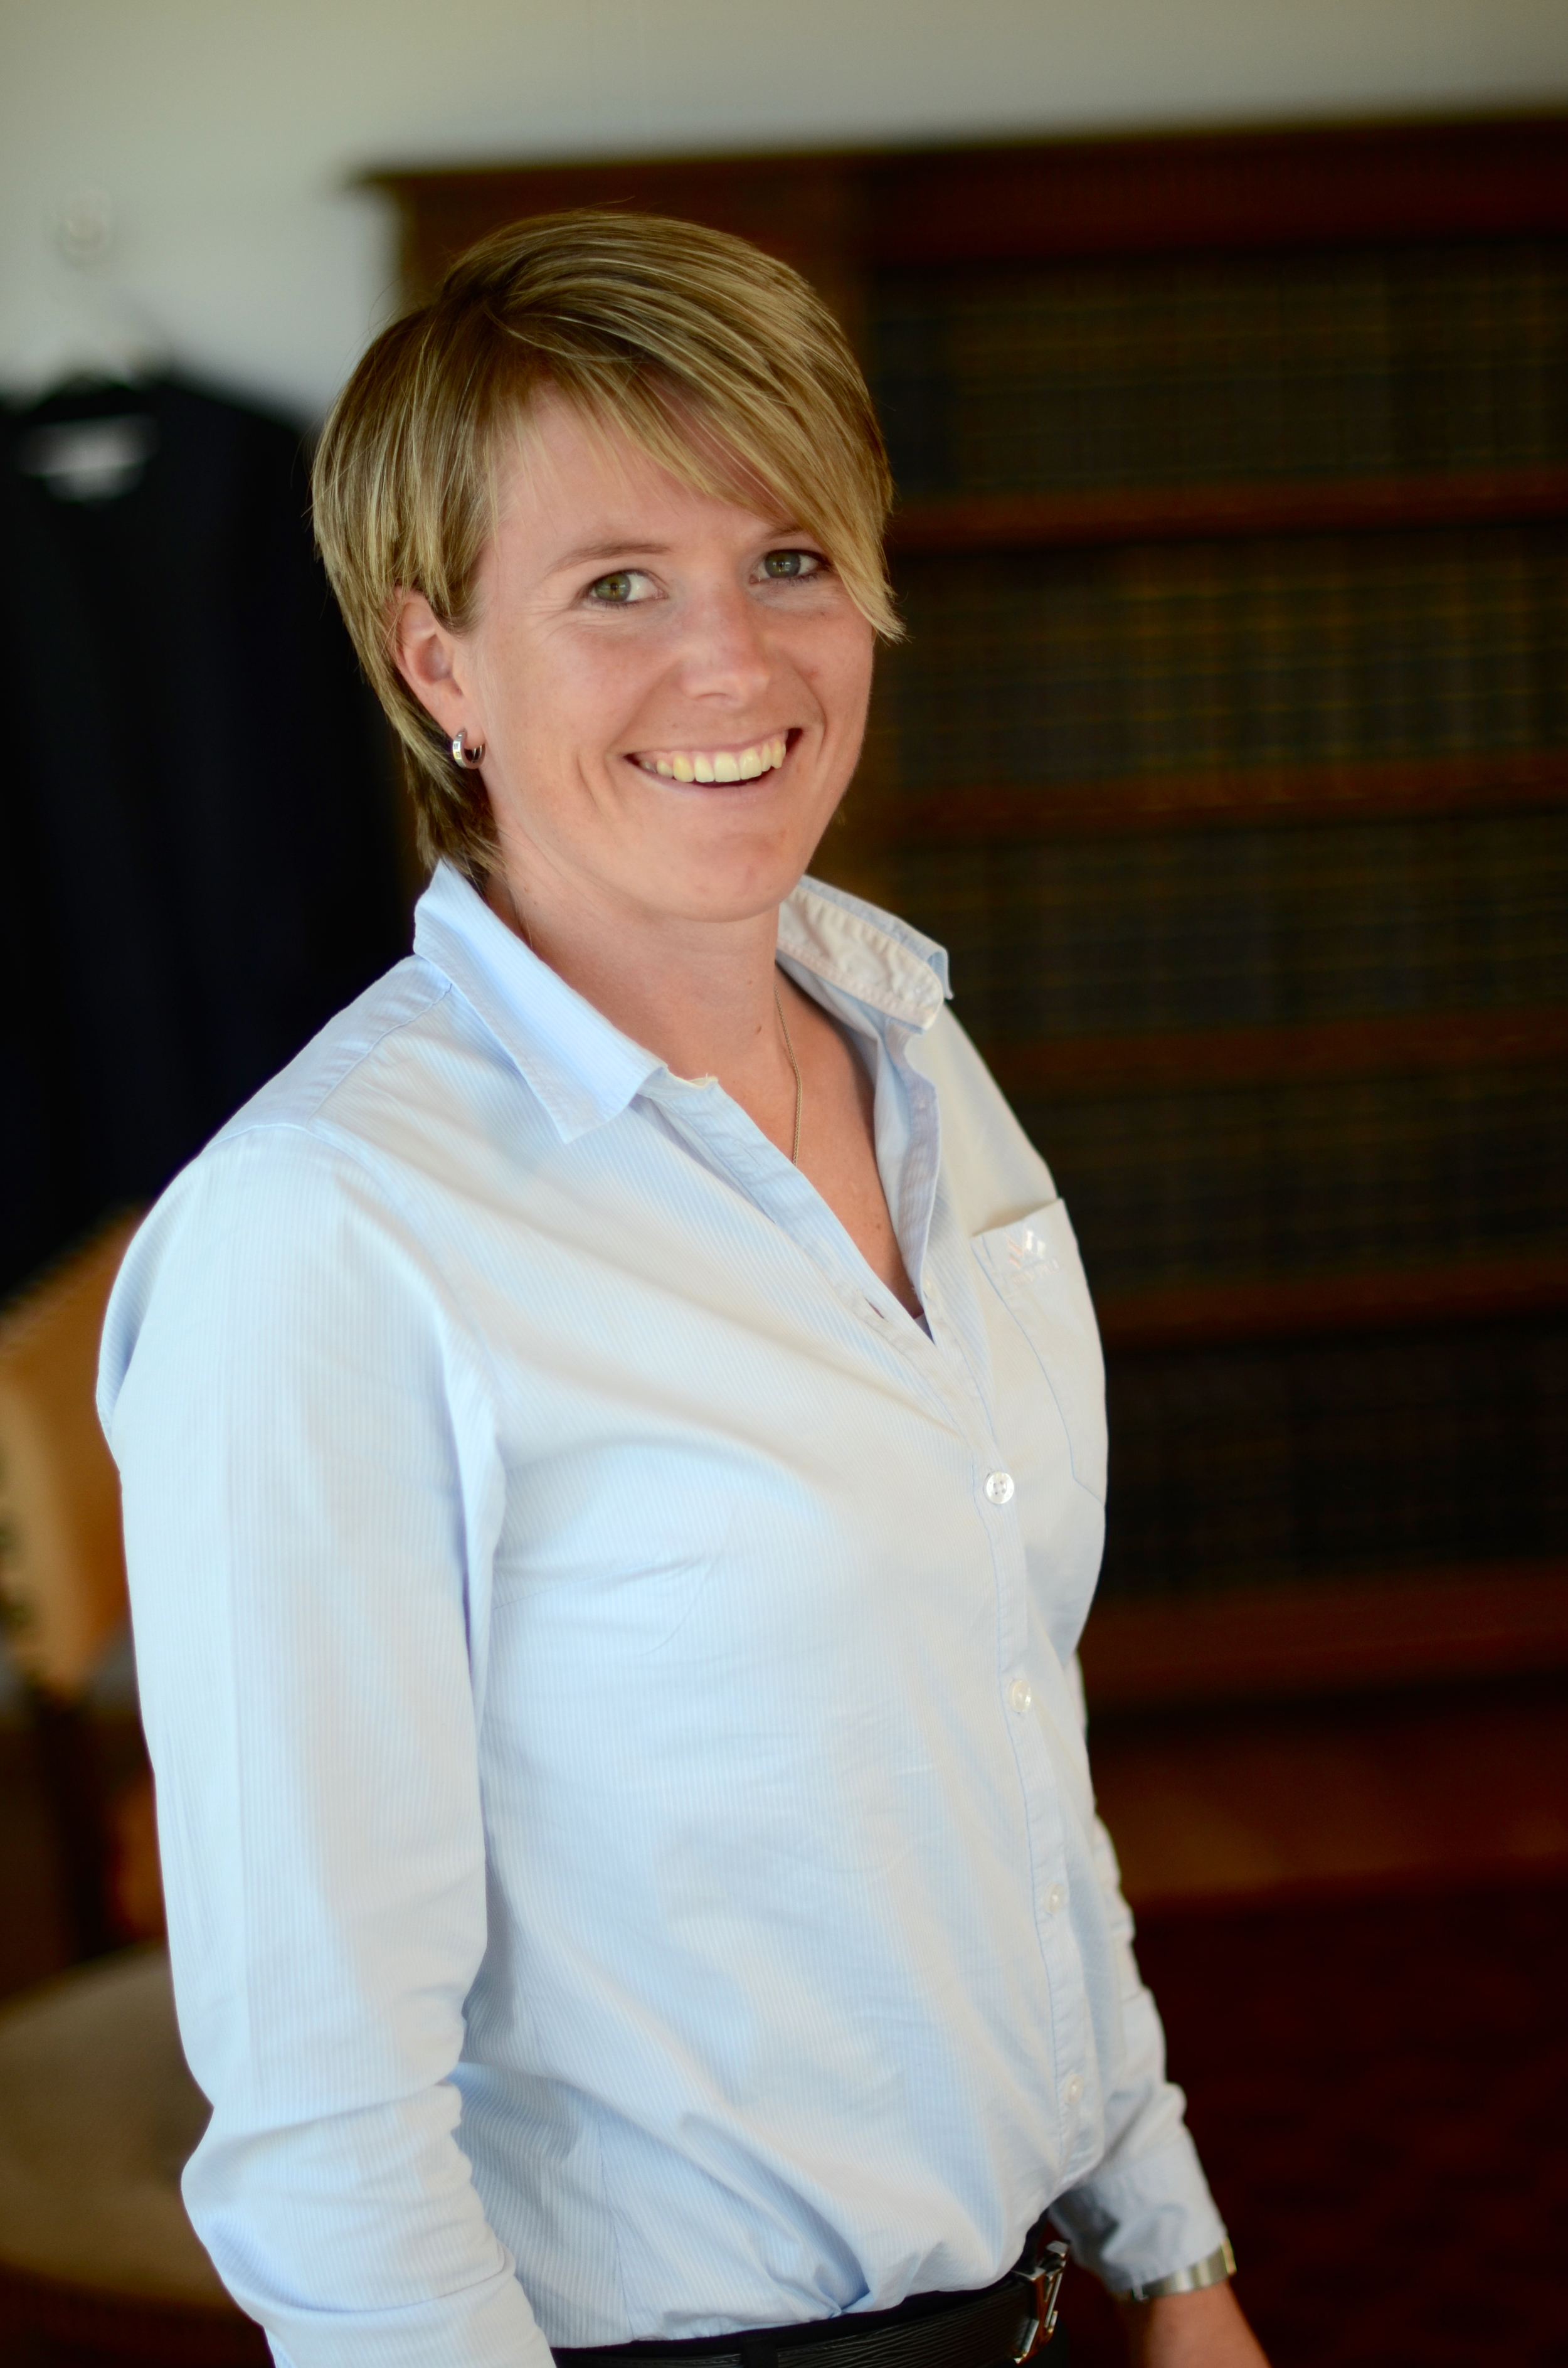 Christine Næss Mathiesen